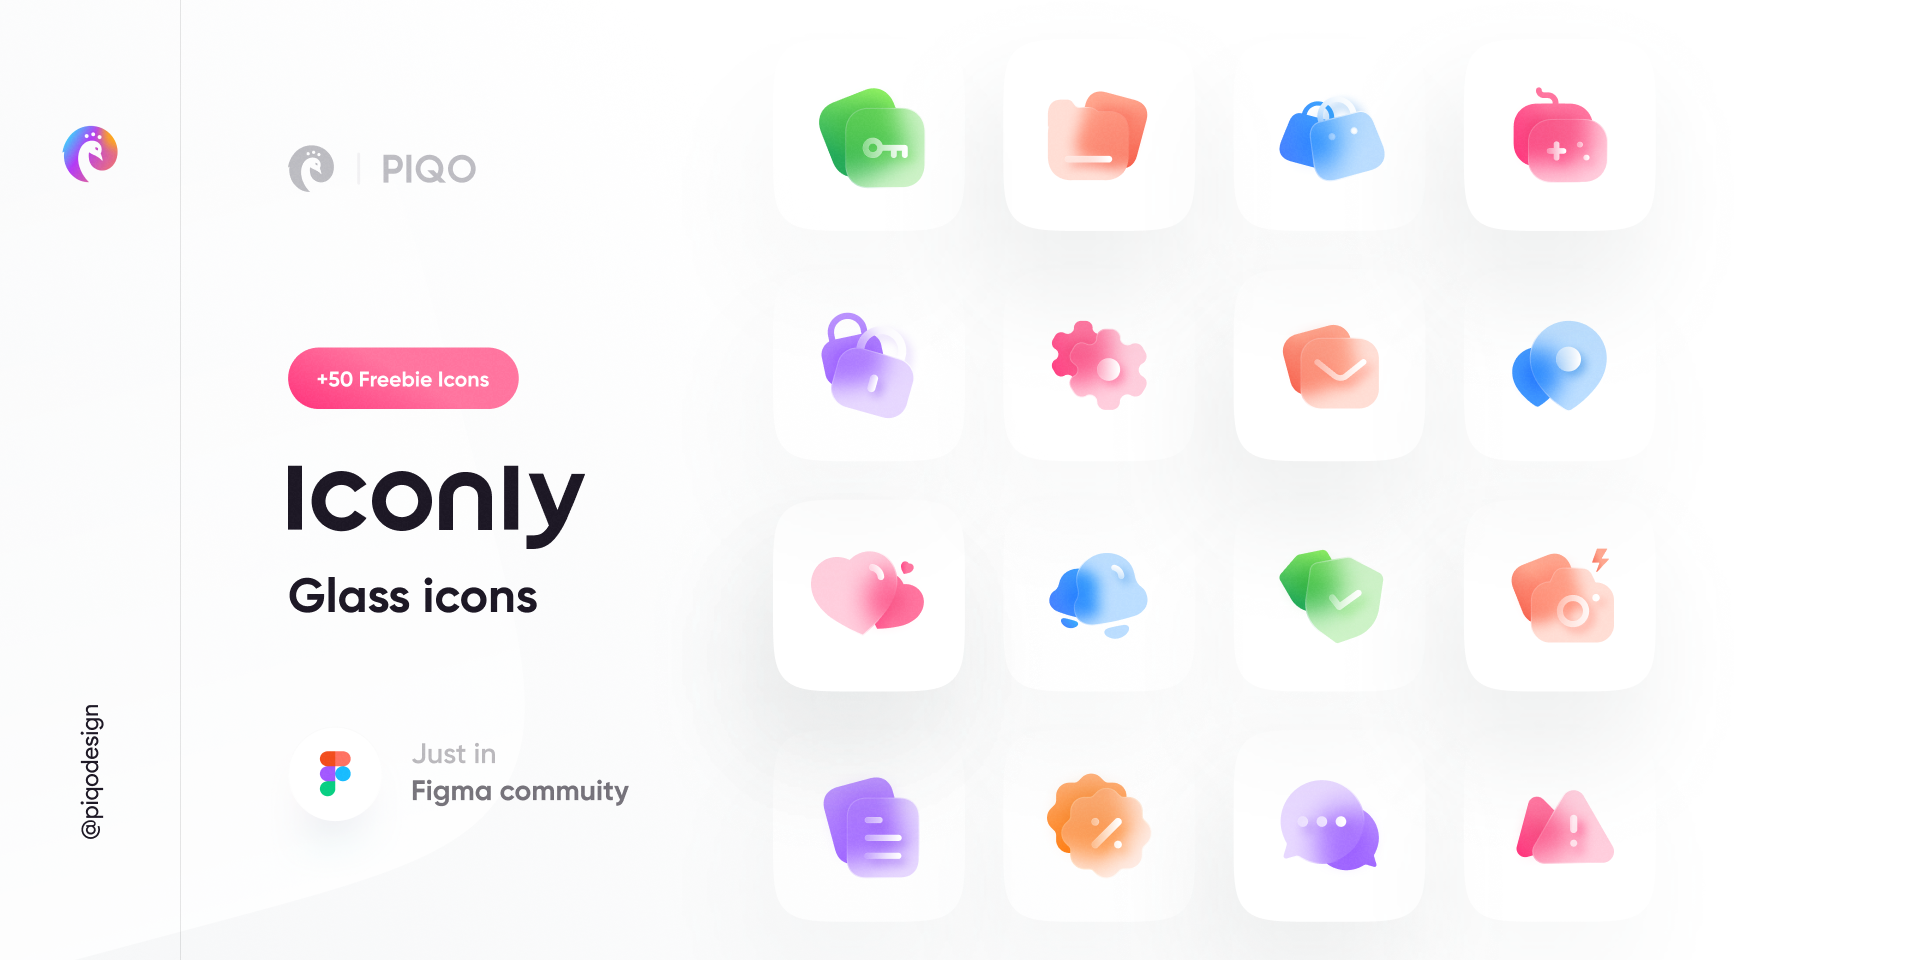 Iconly 2 - Glass Icons figma